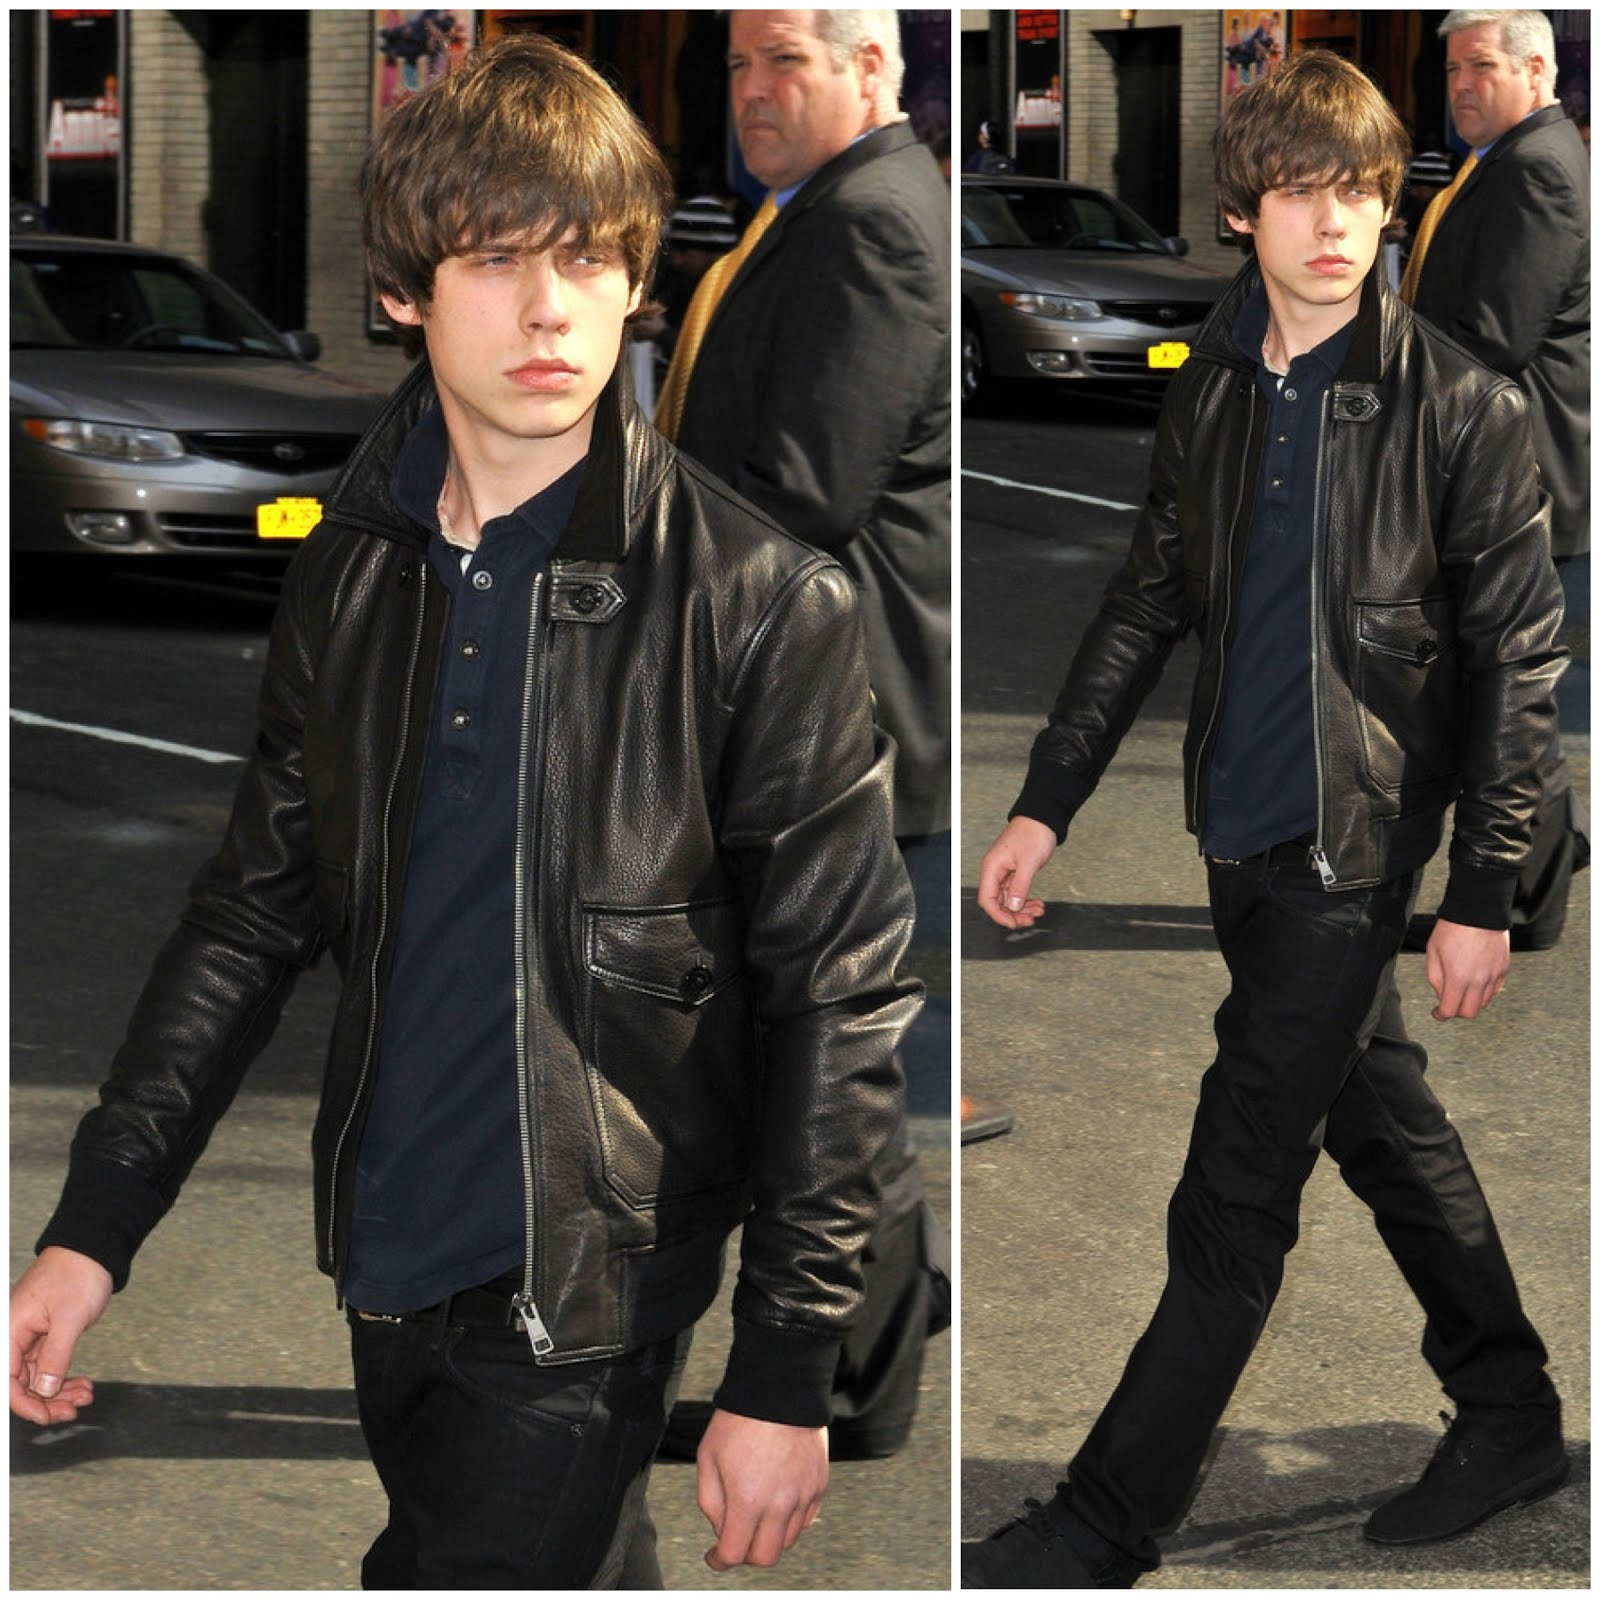 00O00 Menswear Blog Jake Bugg seen at 'The Late Show with David Letterman' in New York City with Burberry Brit Slim-Fit Leather Bomber Jacket (April 8, 2013)